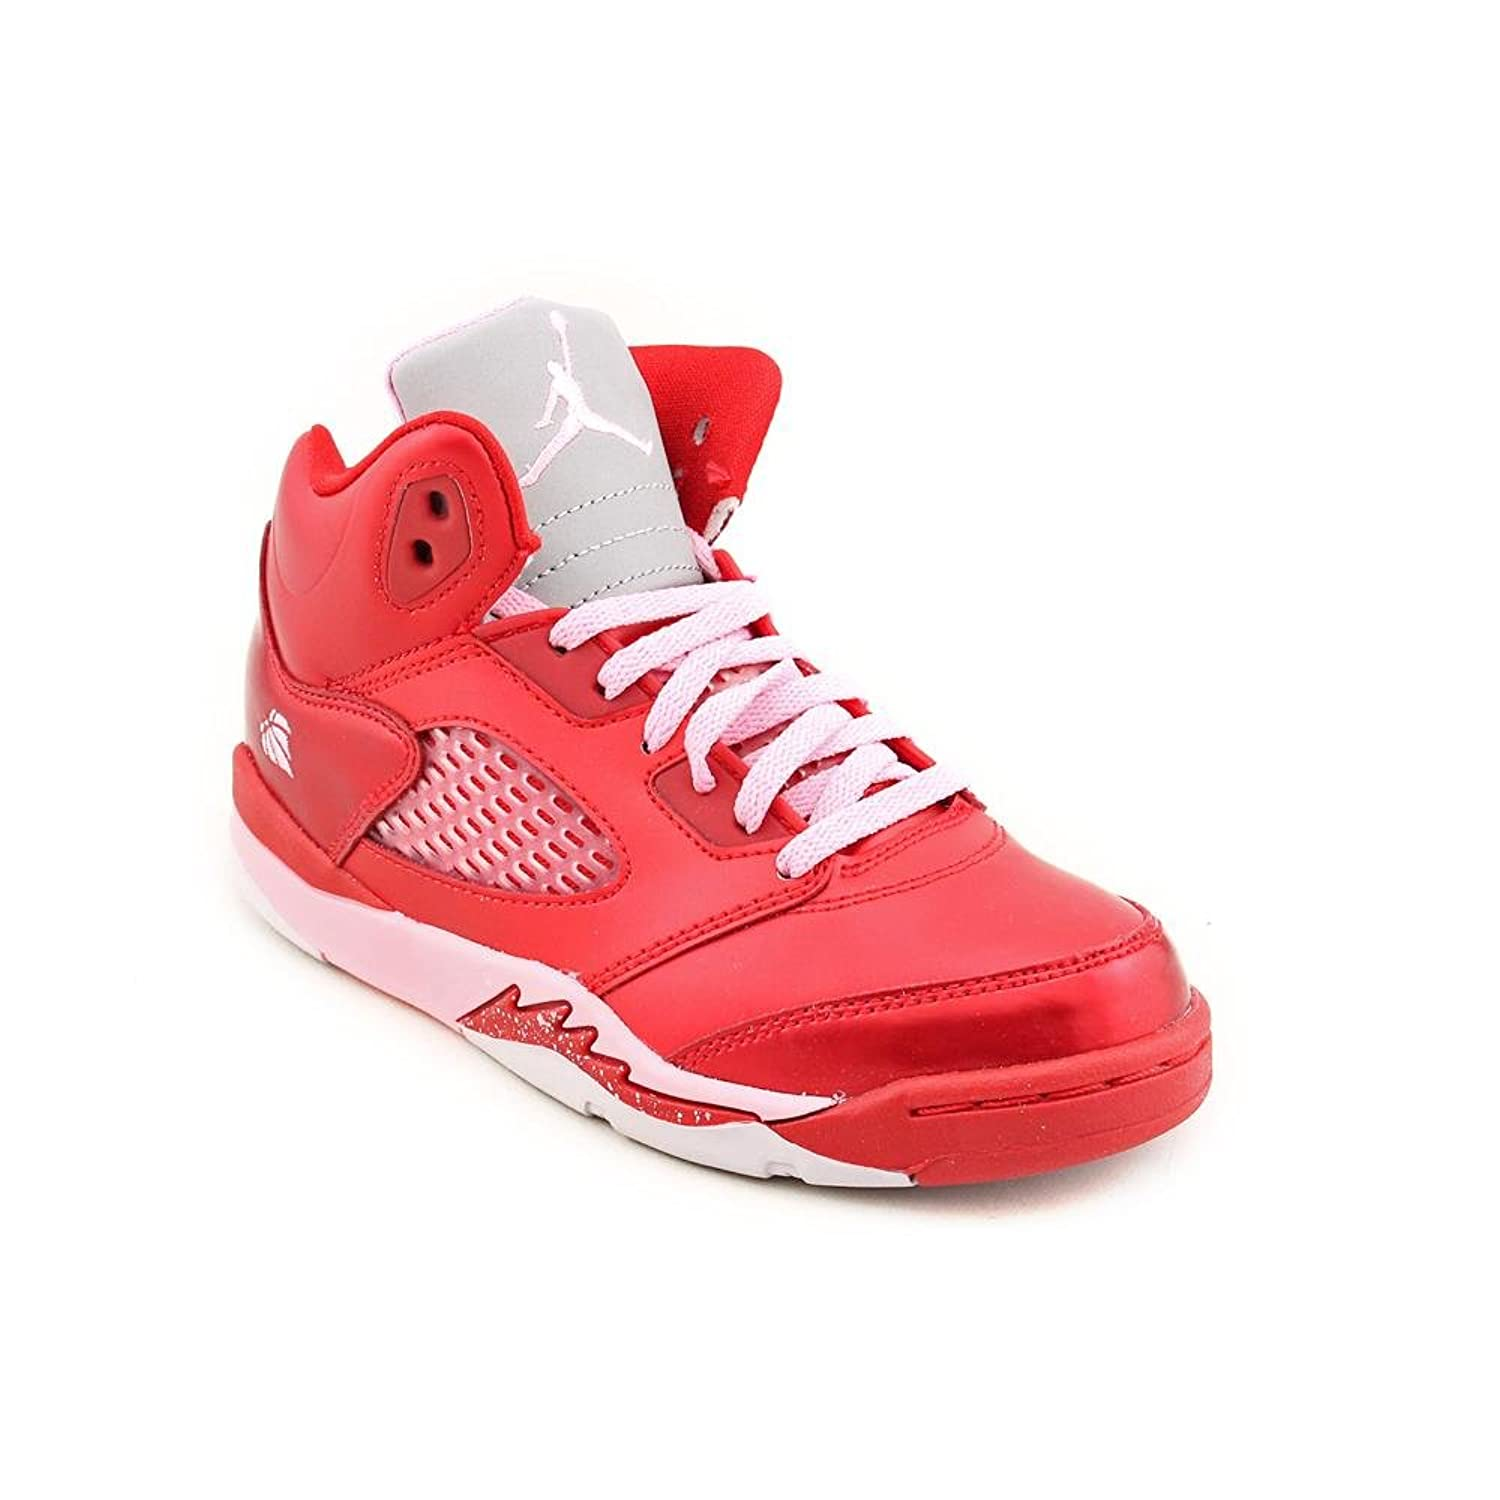 amazoncom nike air jordan 5 retro ps valentines day girls basketball shoes 440893 605 basketball